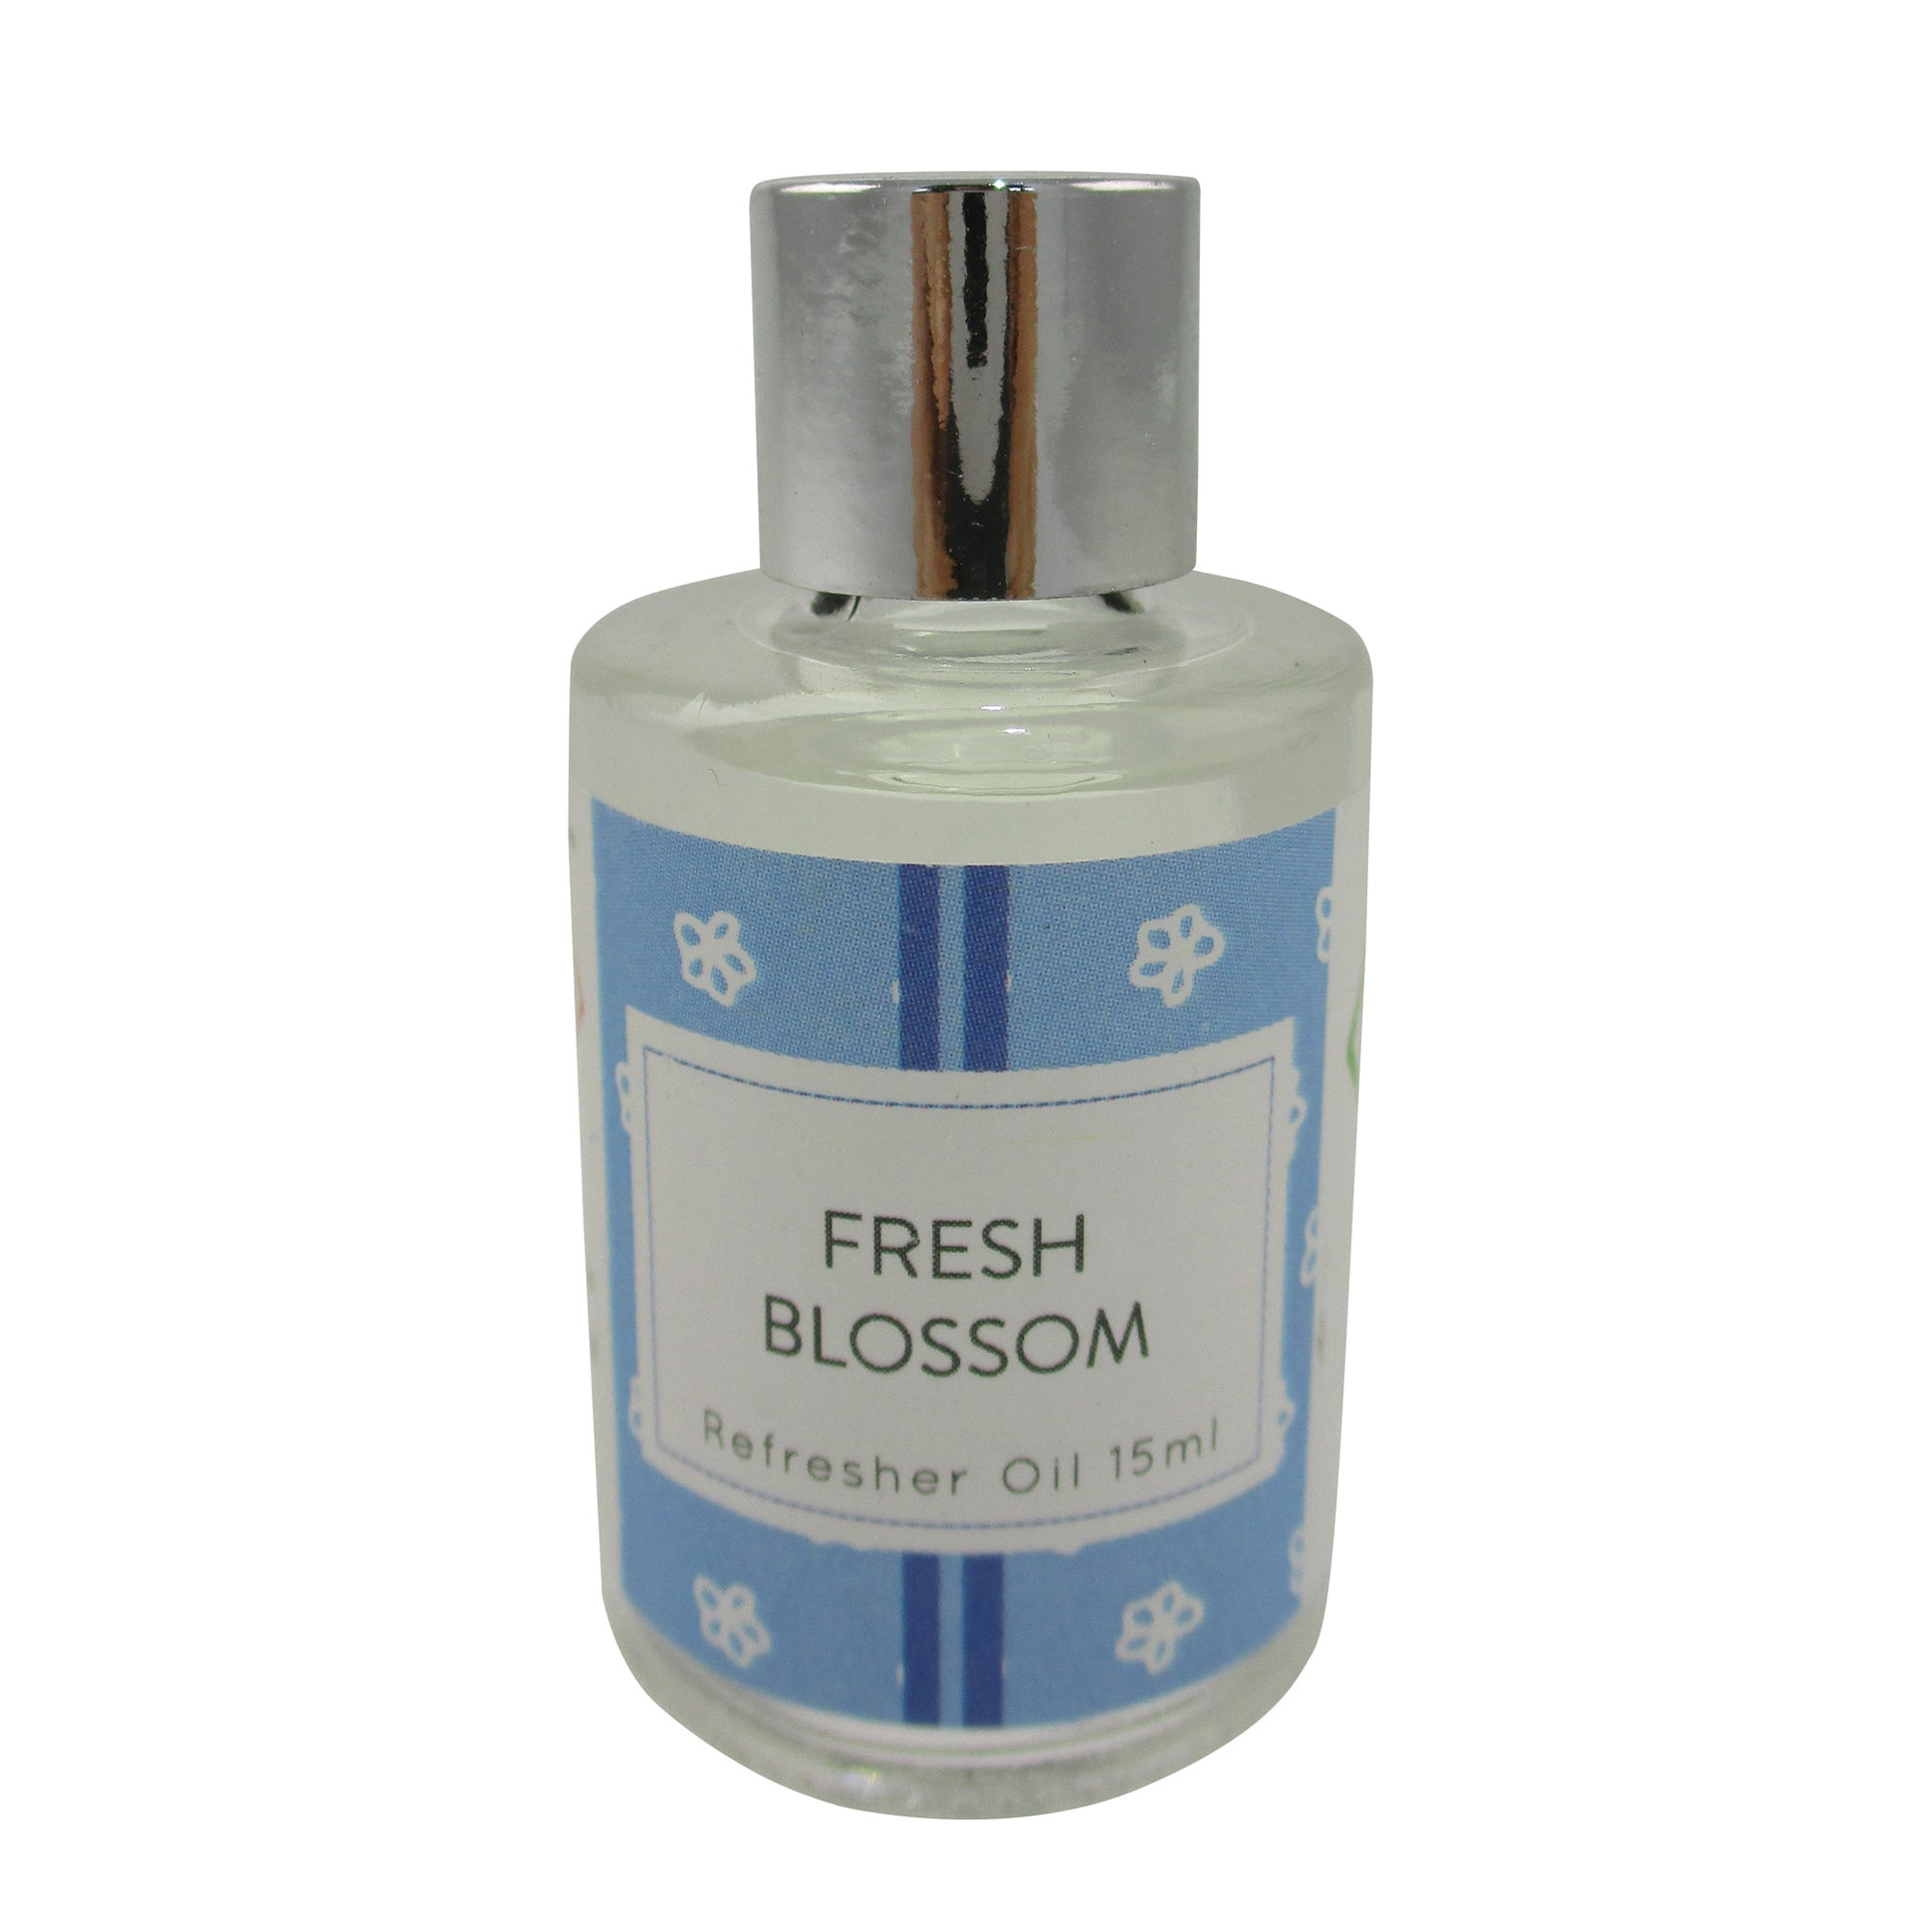 Home Fragrance Fresh Blossom 15ml Refresher Oil